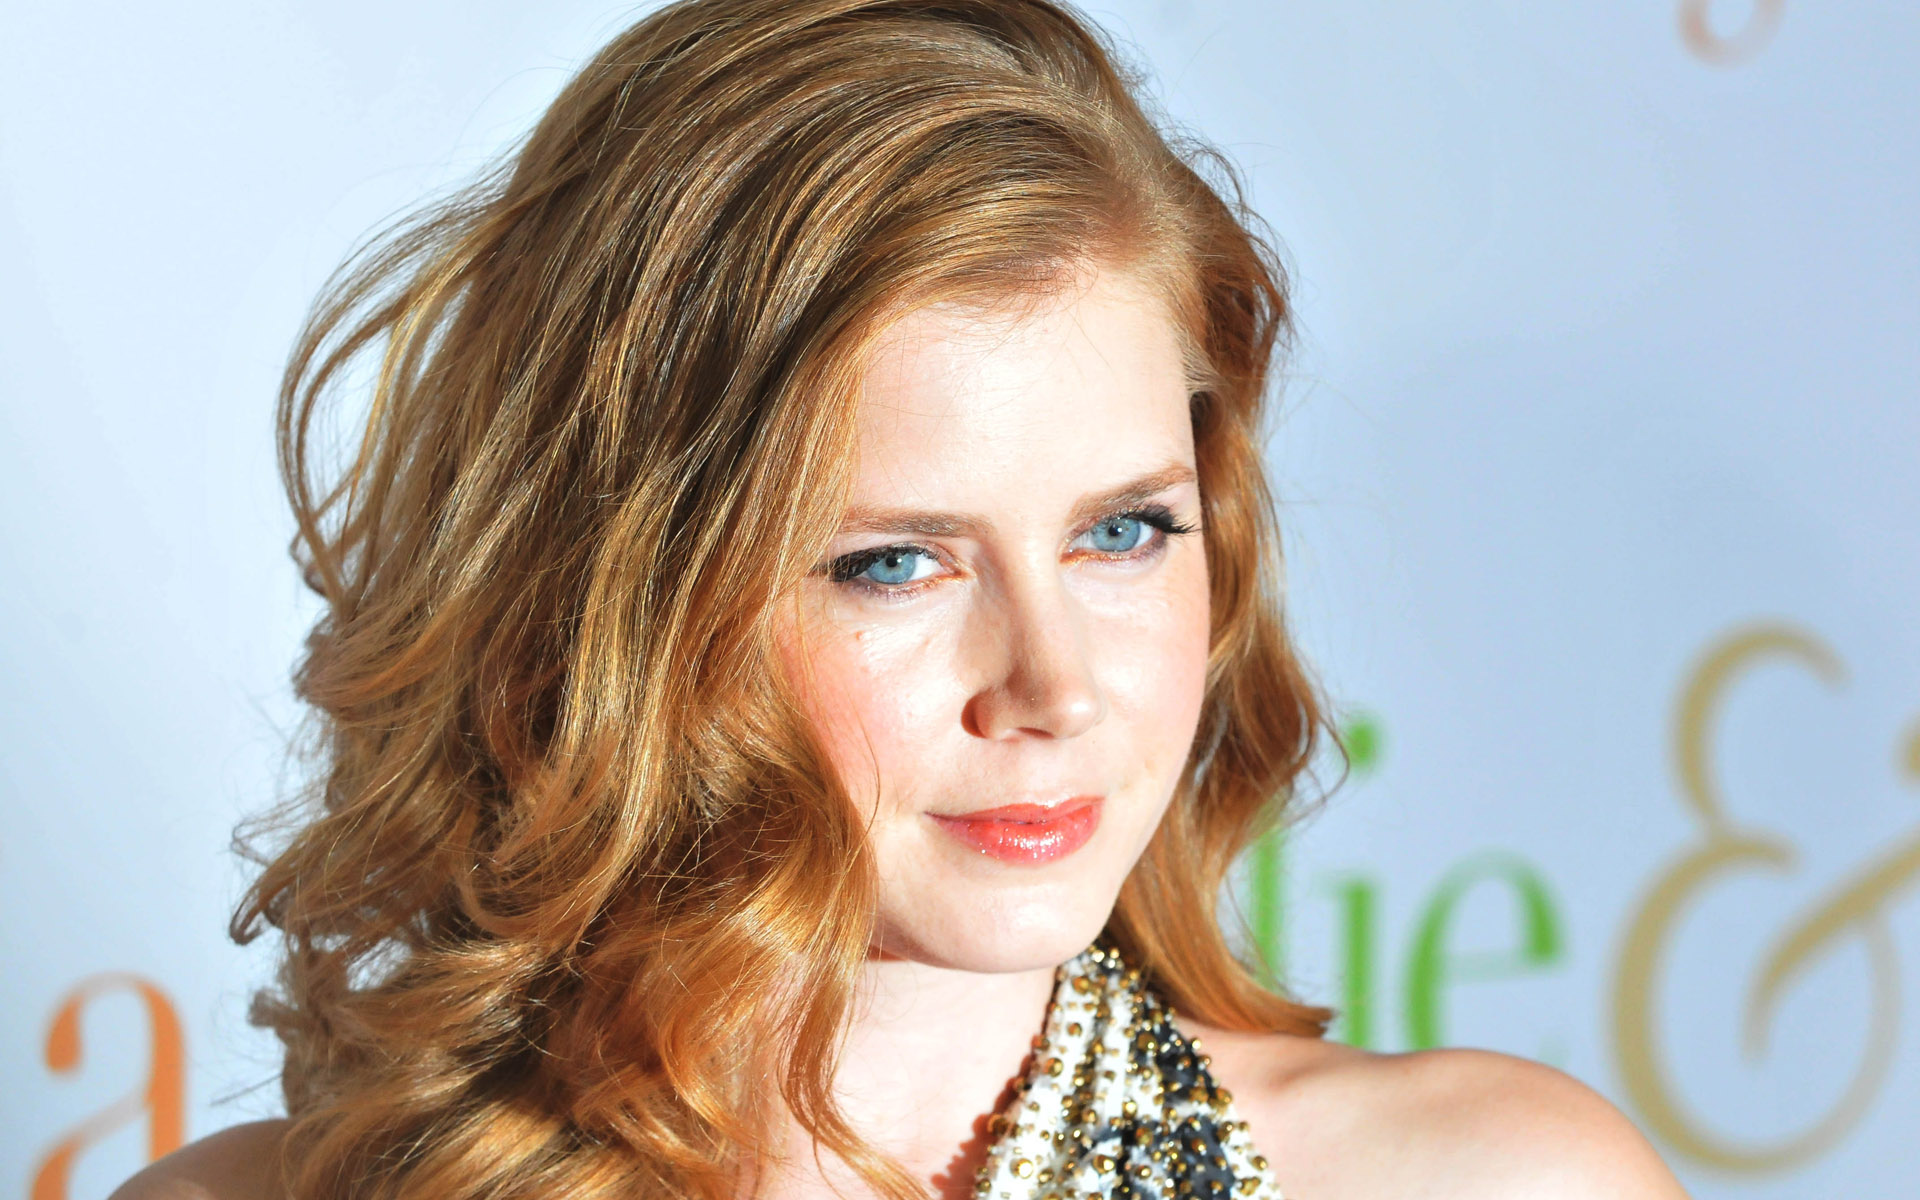 lovely amy adams beautiful smile face look free background computer download pictures hd